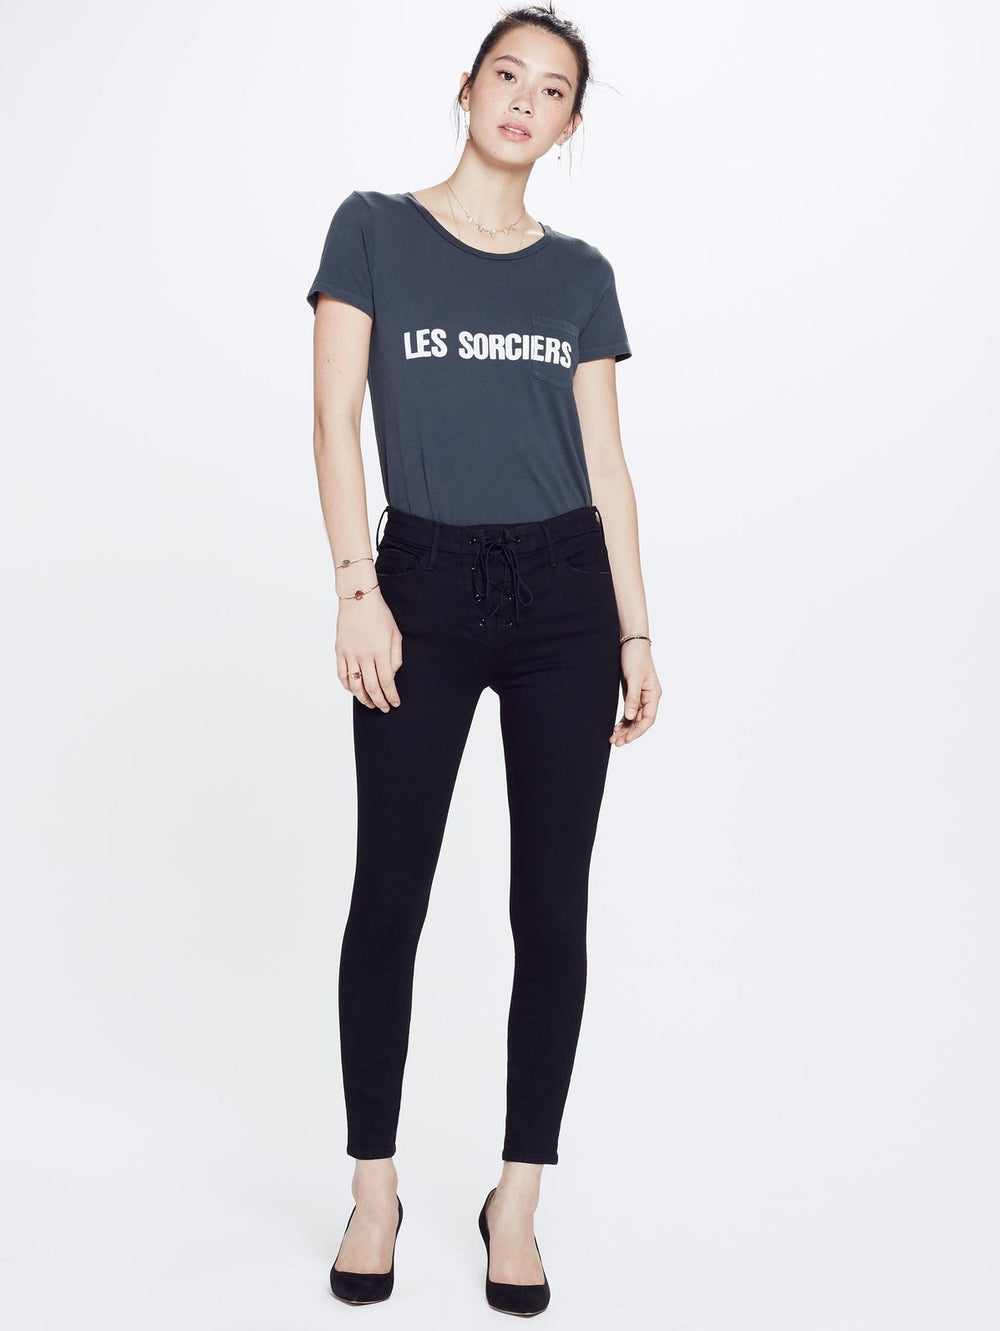 High Waisted Lace Up Looker Jean - Not Guilty by Mother at Maximillia eBoutique.